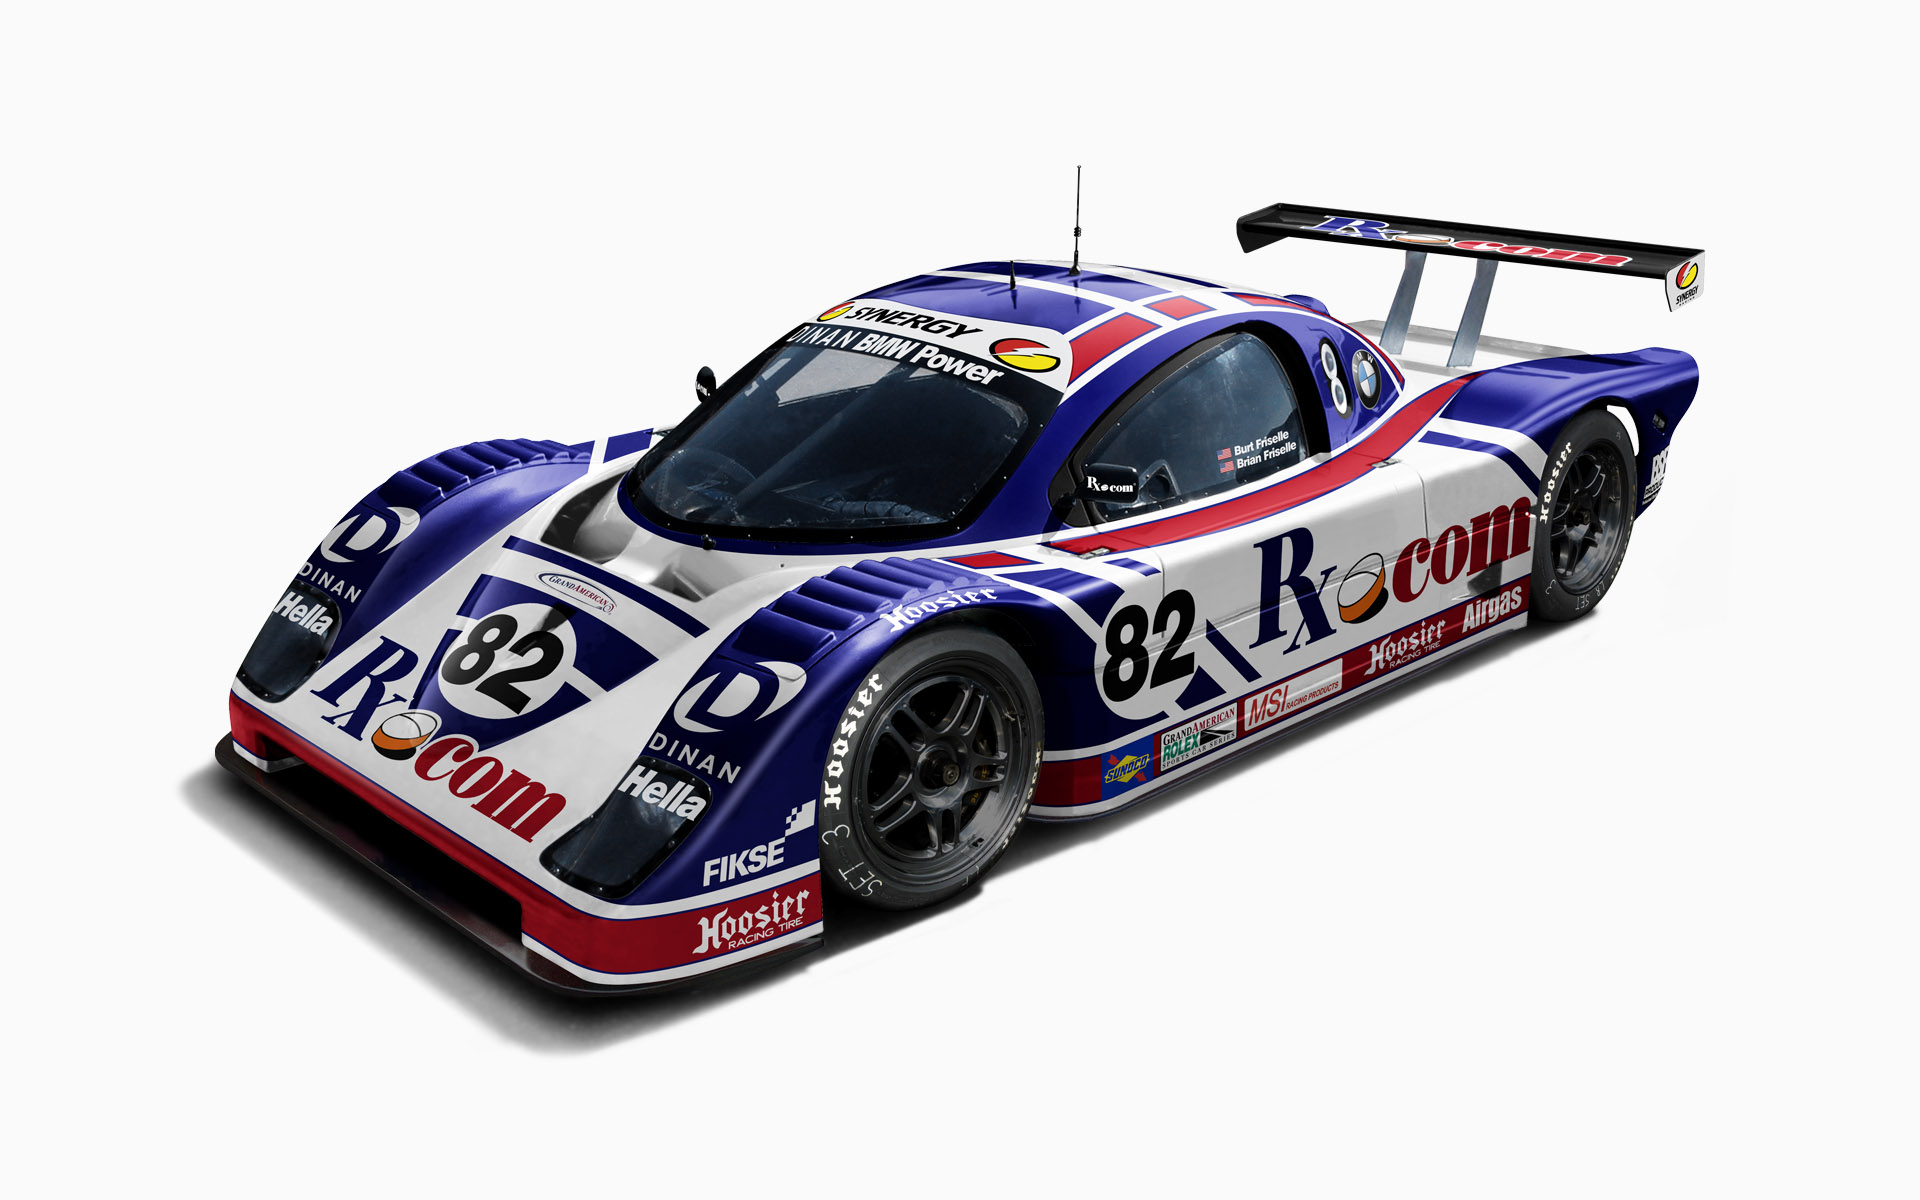 2005 Synergy Racing RX.com Doran Daytona Prototype Livery Visualization